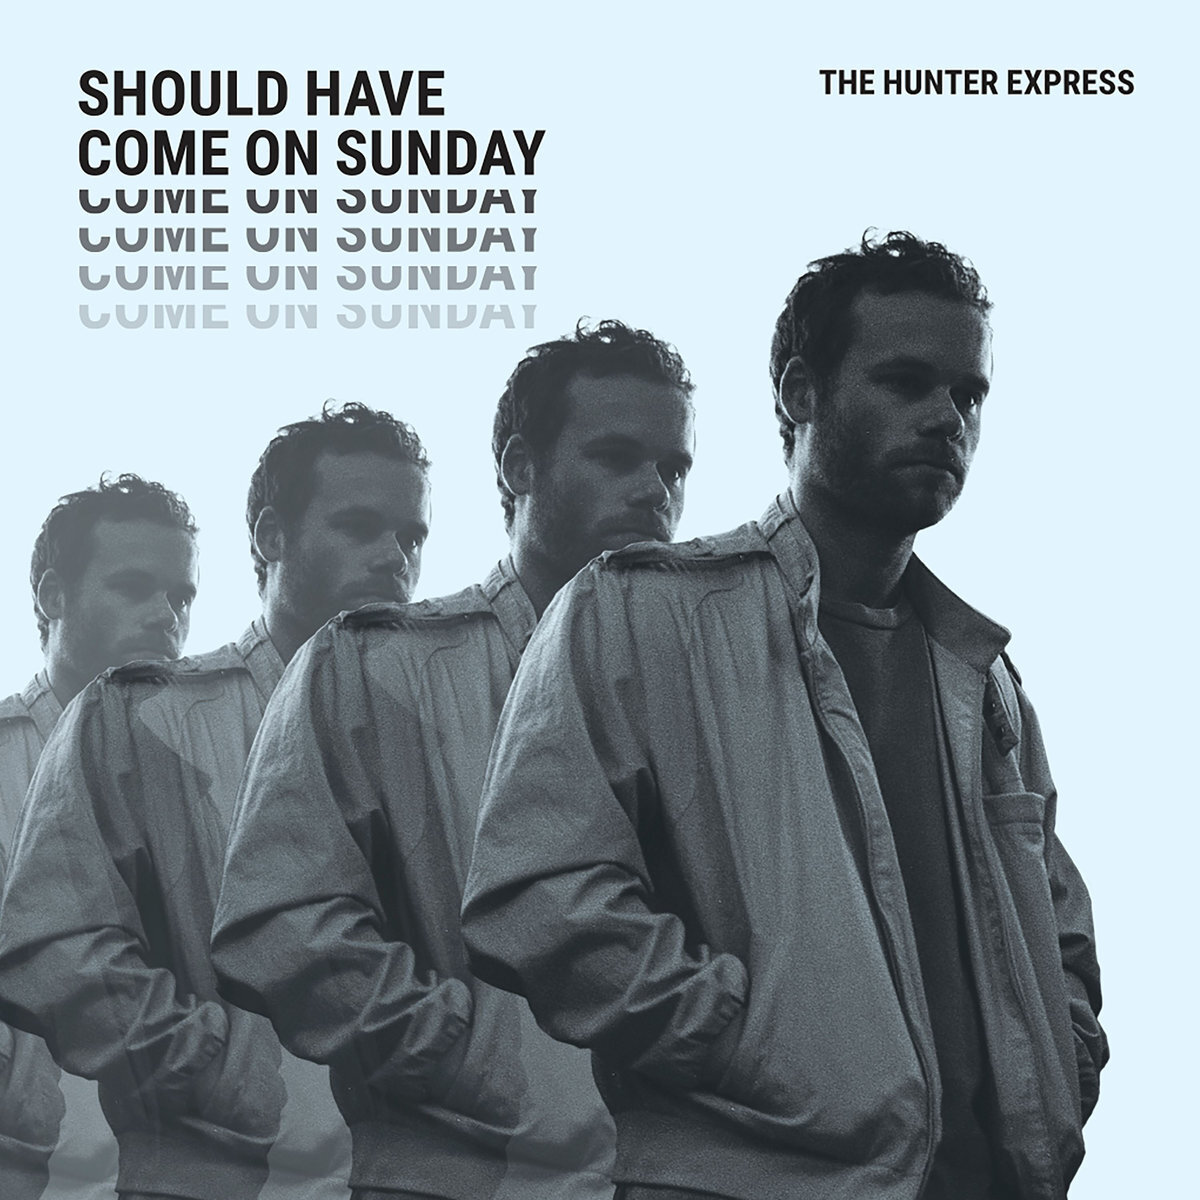 The Hunter Express - Should Have Come on Sunday      Pedal Steel//Guitar//Baritone Guitar